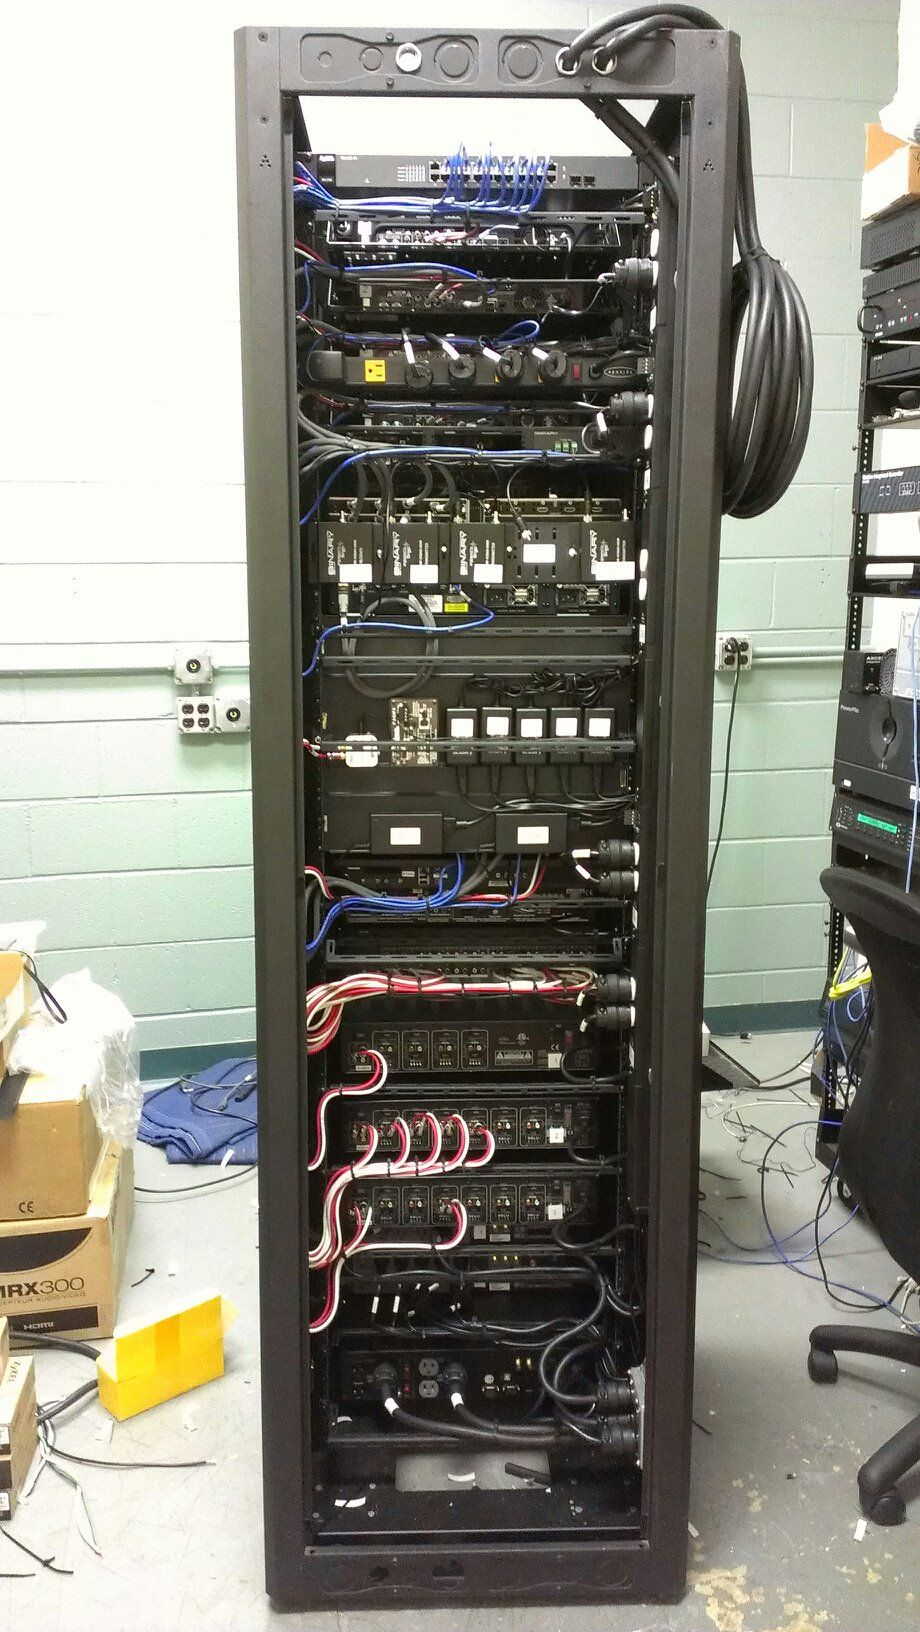 medium resolution of av distribution rack set up by a professional they did a great job